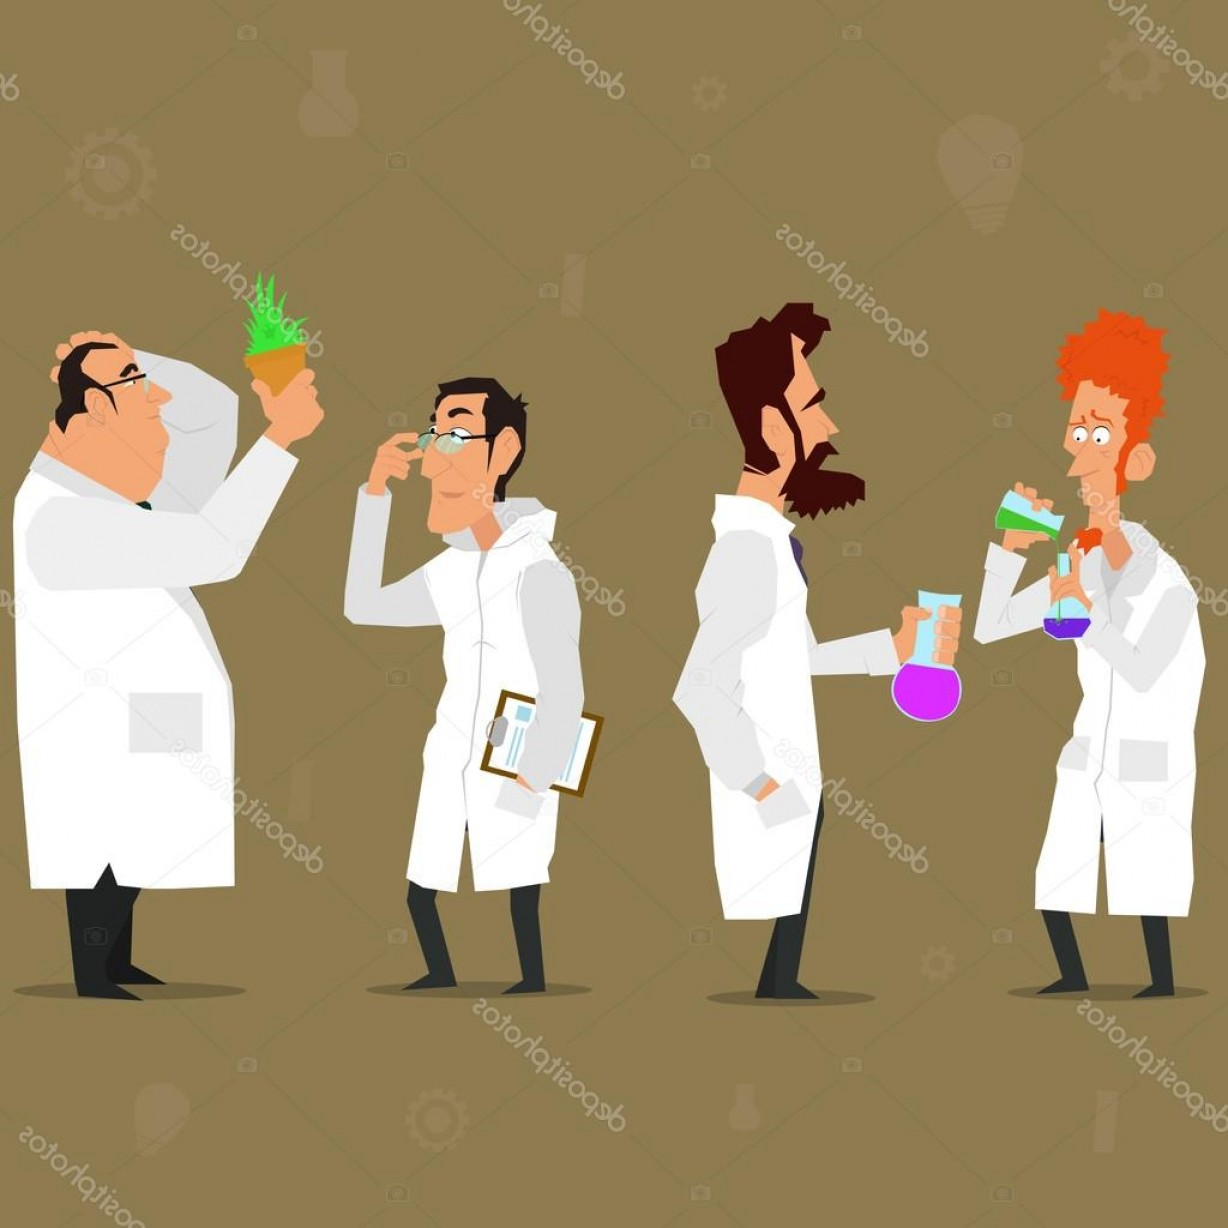 Lab Coat Cartoon Vector: Stock Illustration Scientist Characters And Lab Coats